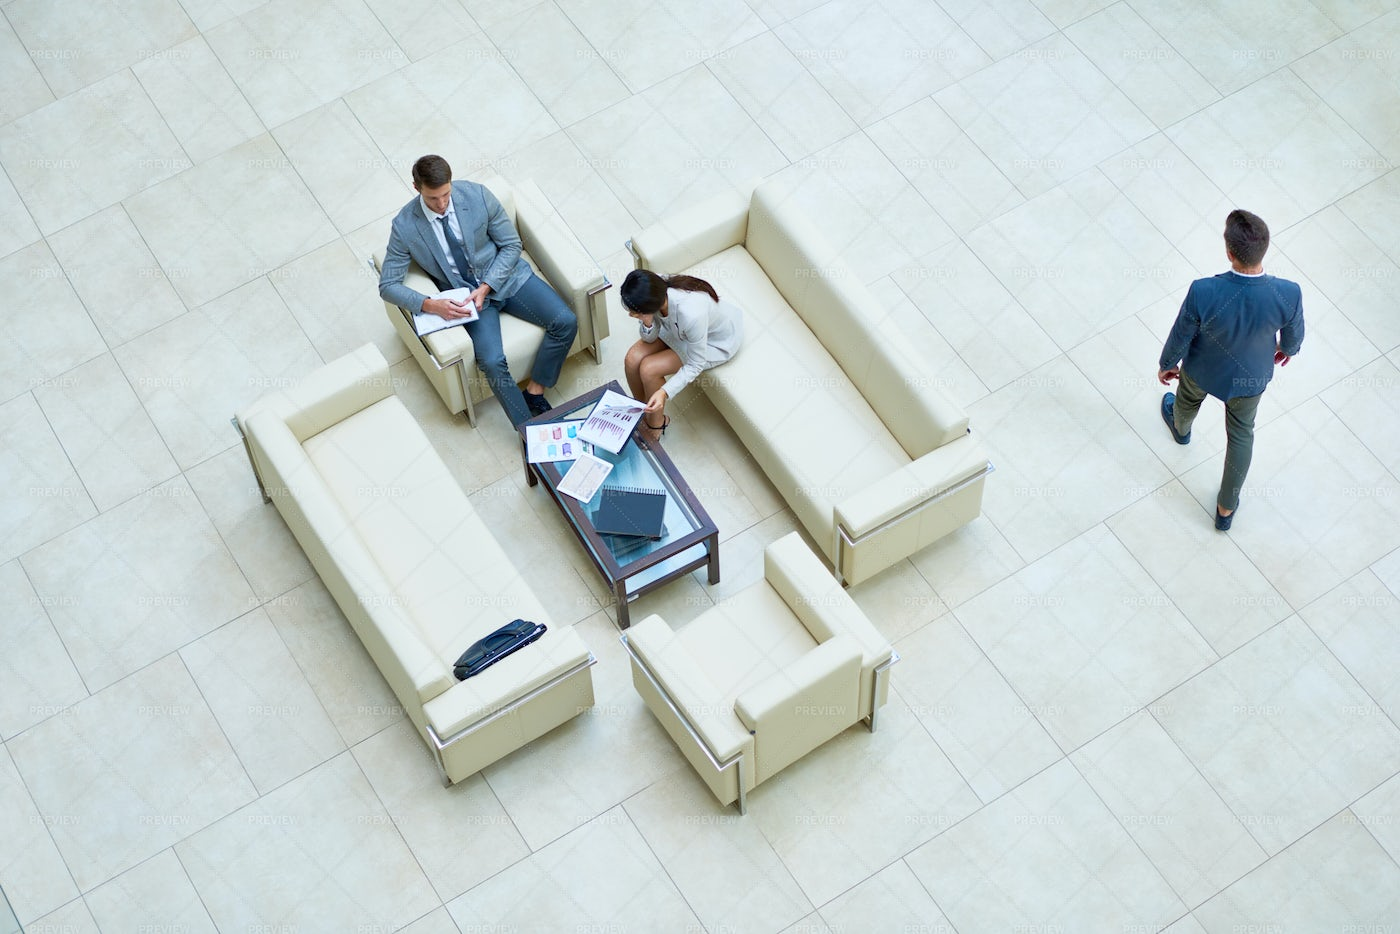 Top View Of Business People In Hall: Stock Photos